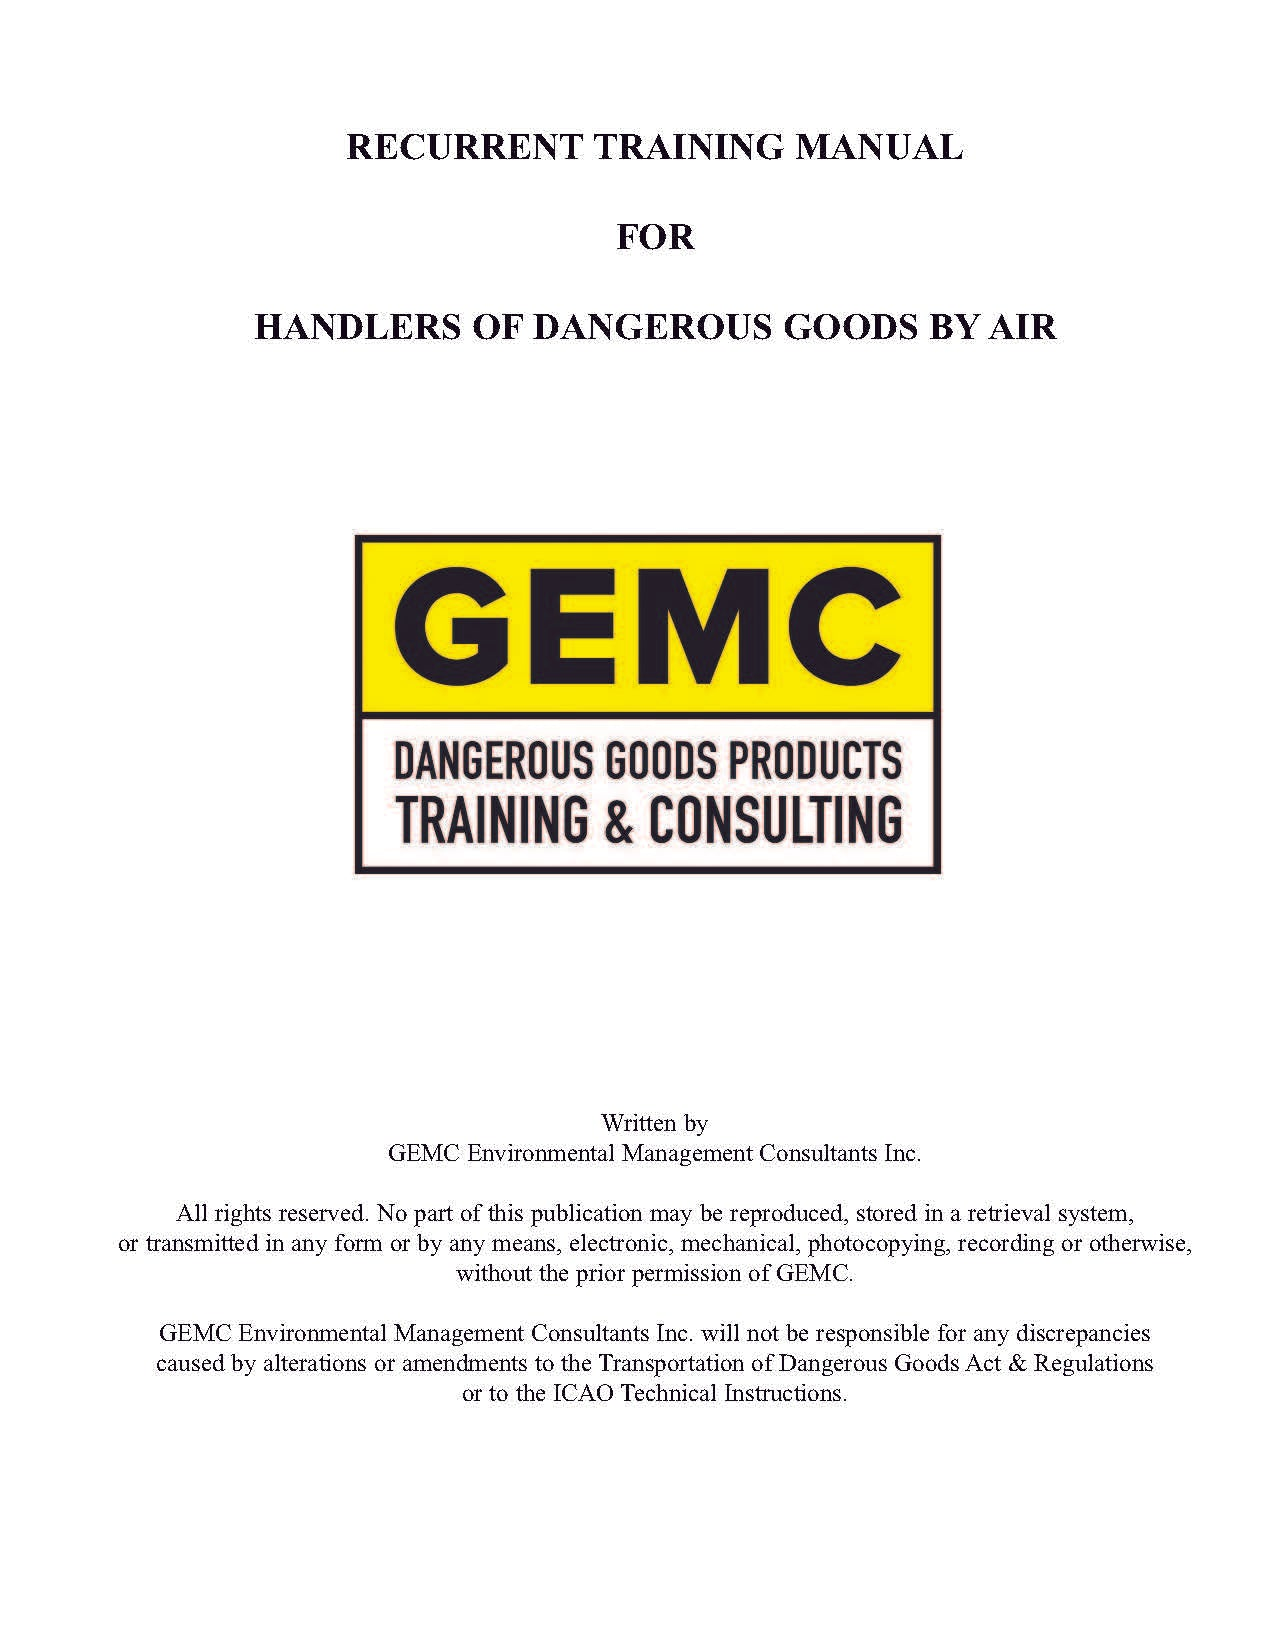 AIR Training Participant Manual